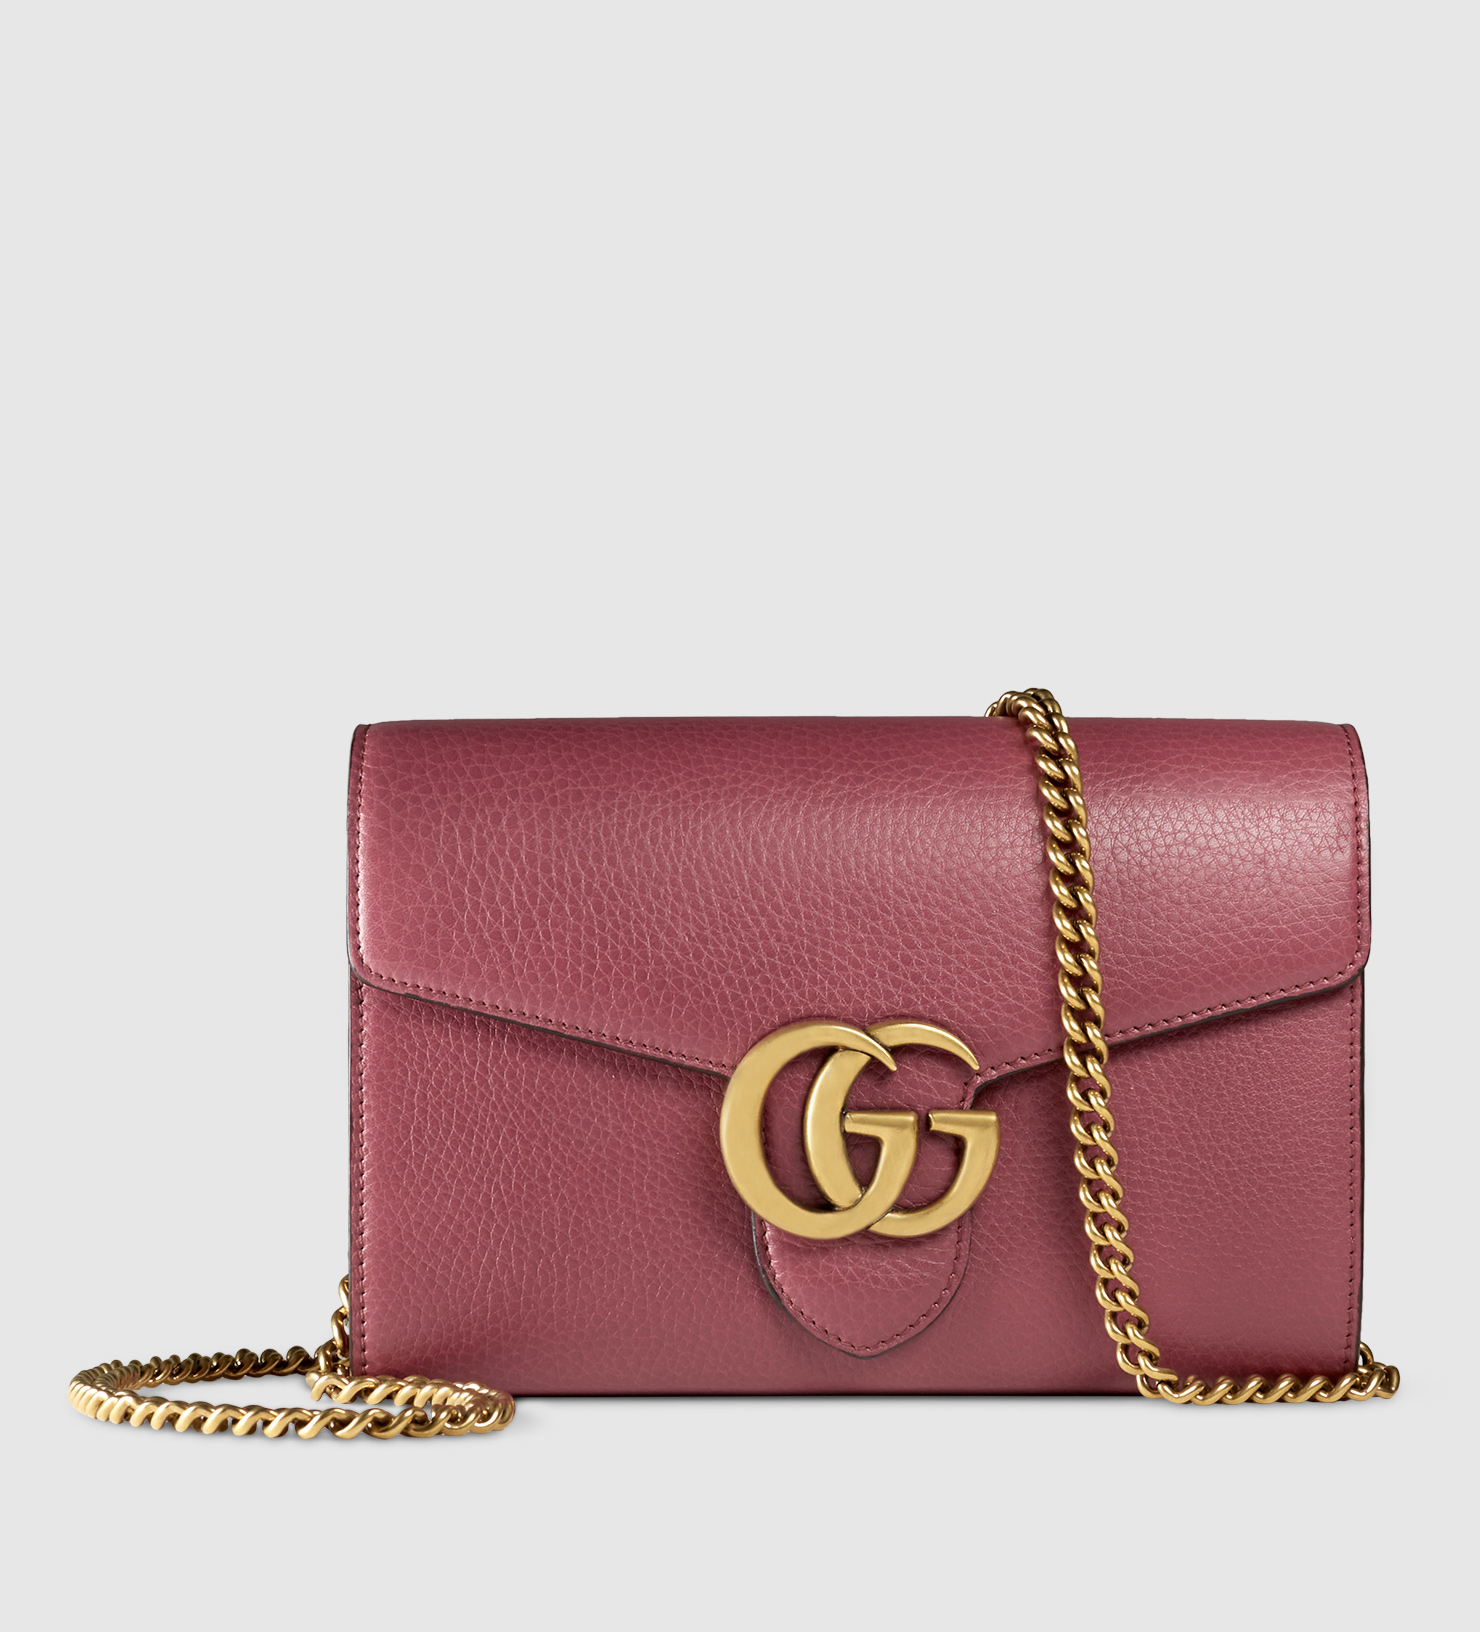 Lyst - Gucci Gg Marmont Leather Chain Wallet in Purple